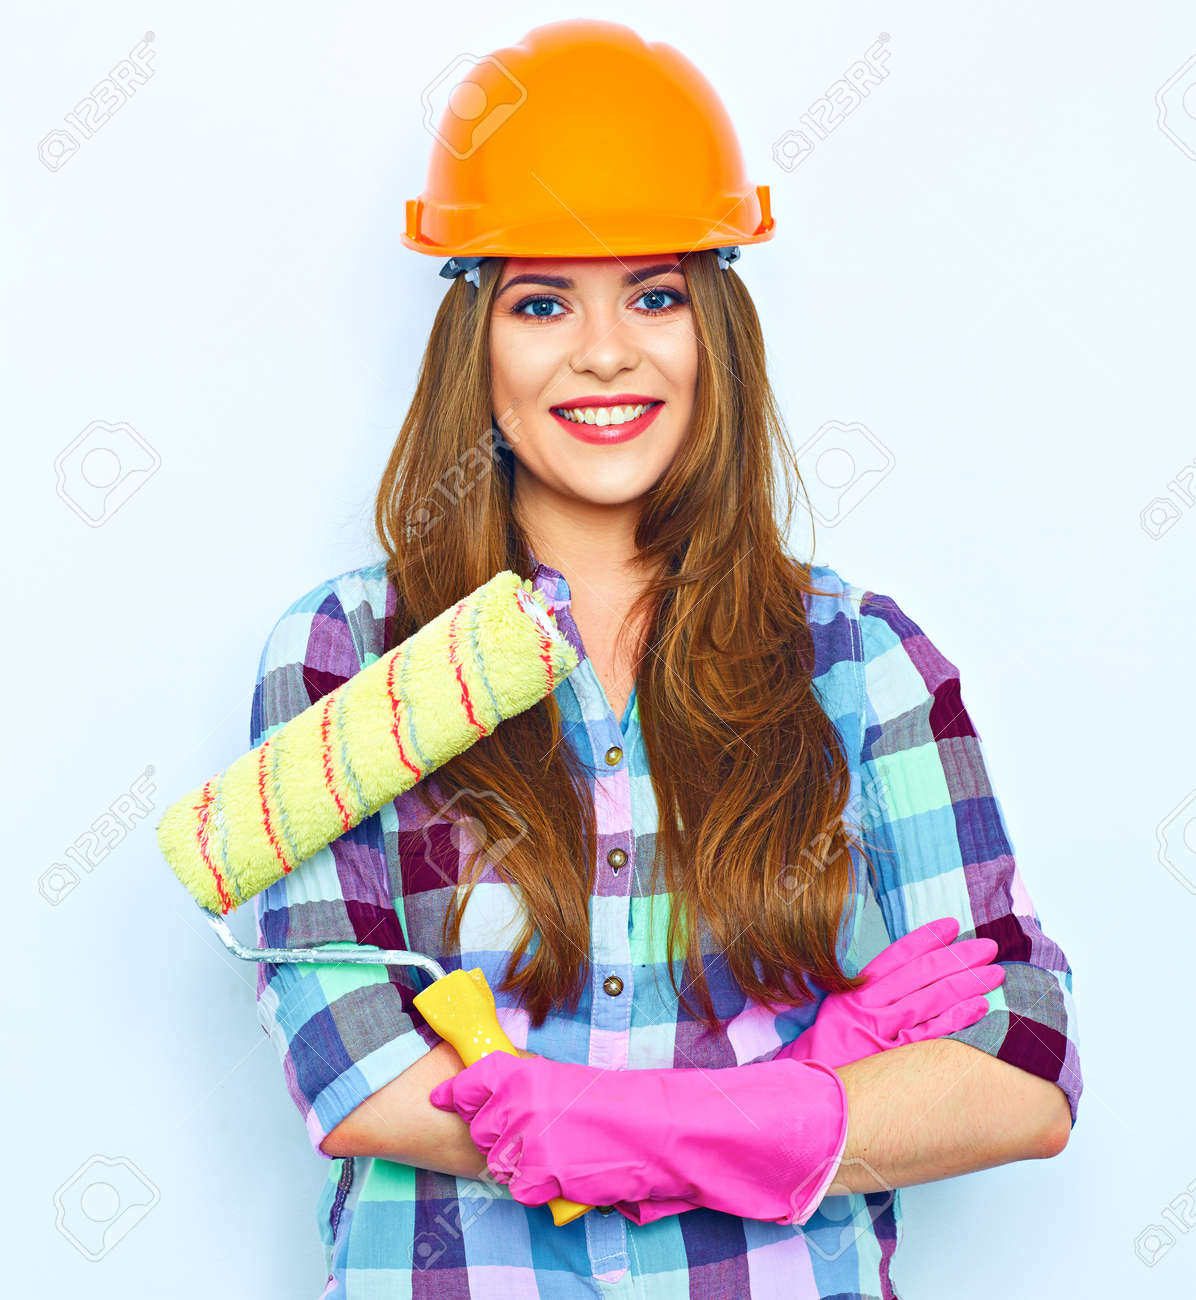 Young woman with crossed arms holding painting roller, standing against white background wall. Studio portrait of smiling woman. - 125068681